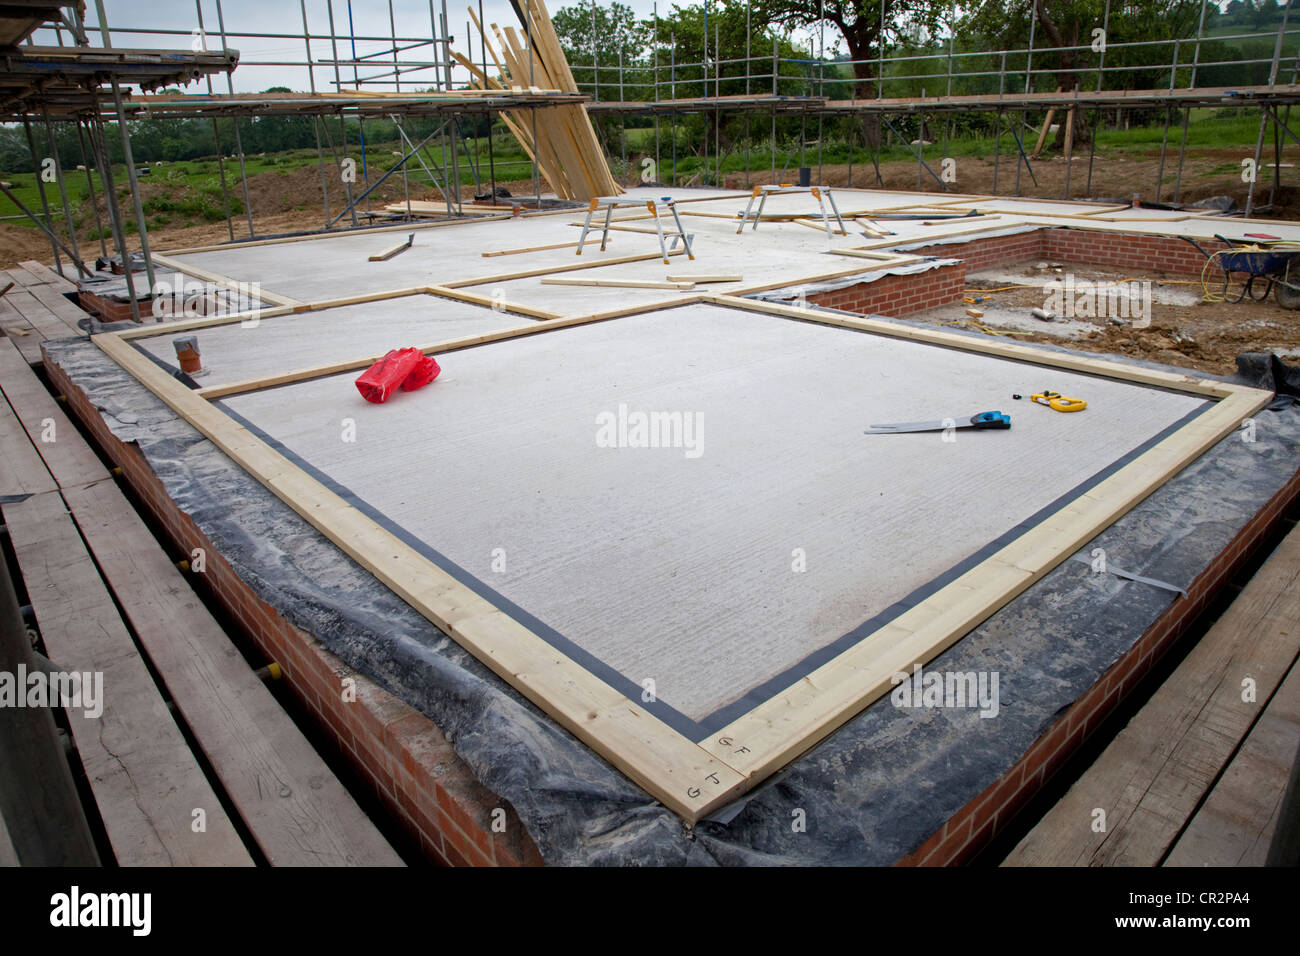 Bottom Plate To Slab : Sole plates for timber frame building laid out on